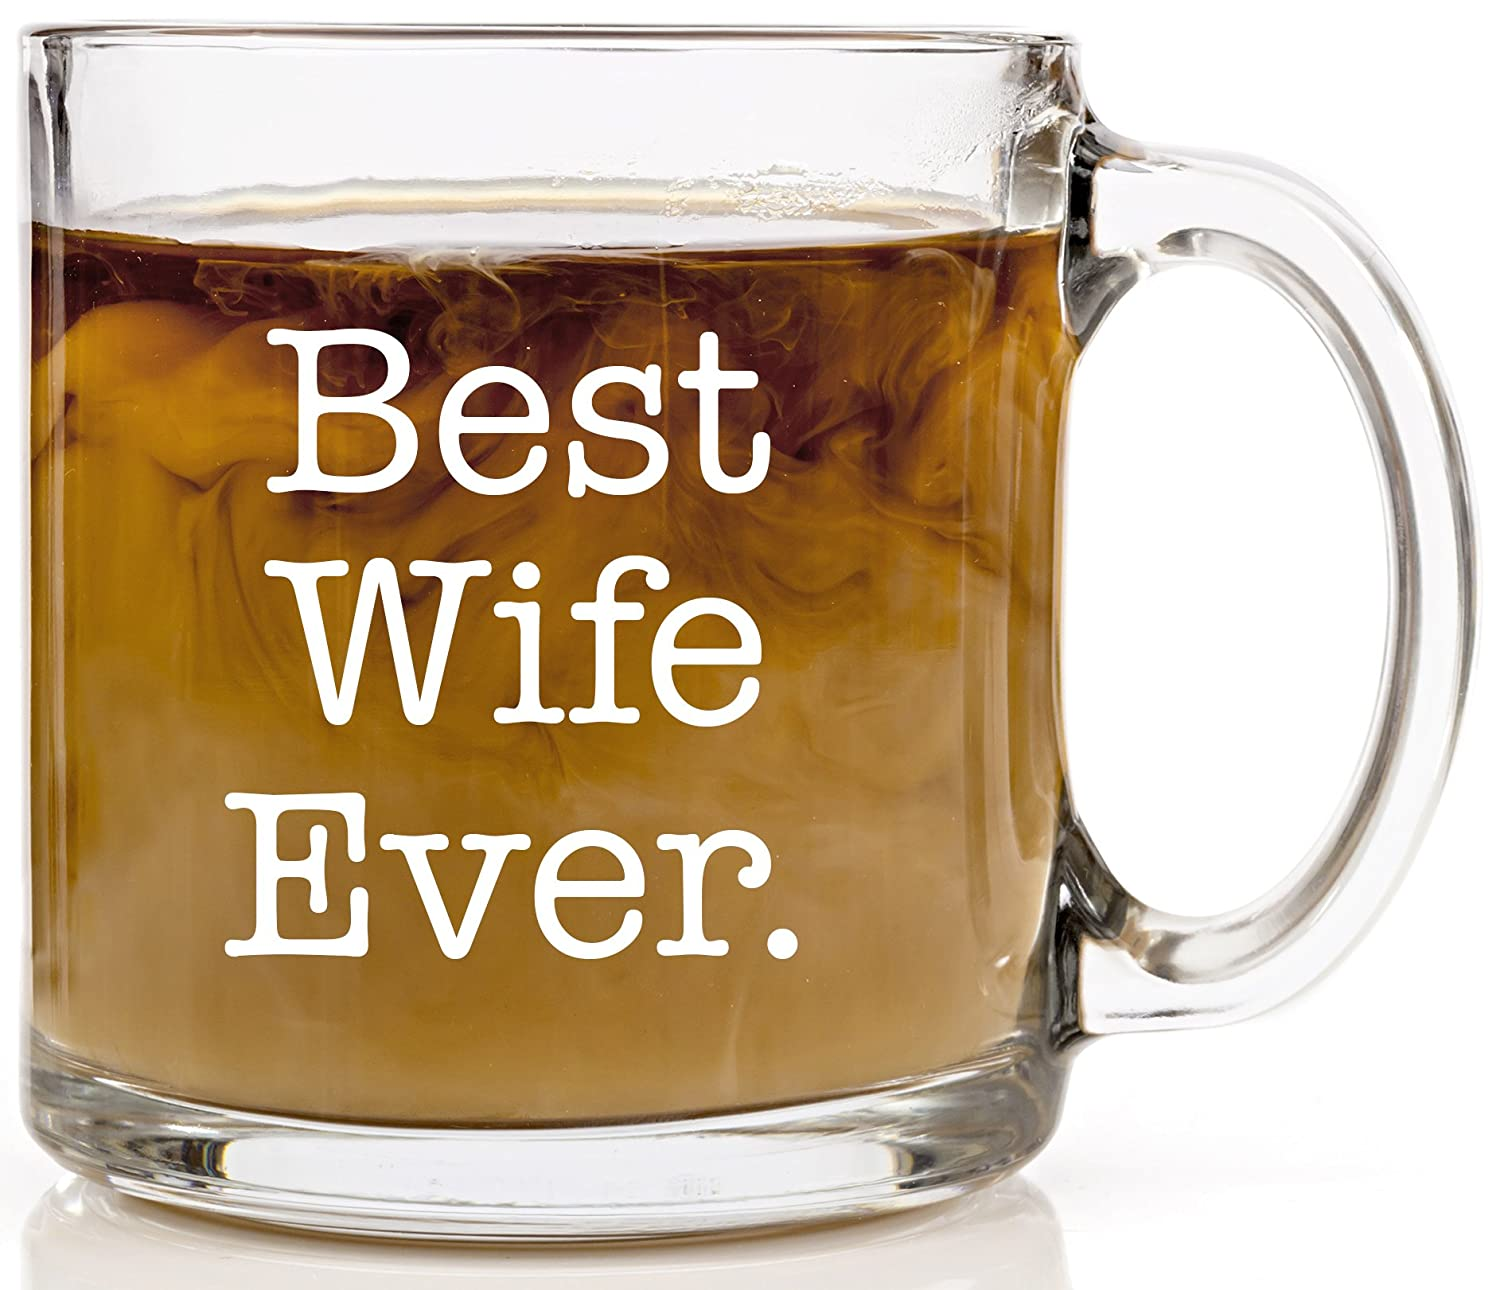 Best Wife Ever Glass Coffee Mug | Husband Gifts for Wife | Funny Mugs for Women | Wedding Anniversary Gift for Bride Wife | Birthday Valentines Mother's Day Christmas Gifts Presents | 13 oz Glass Cup